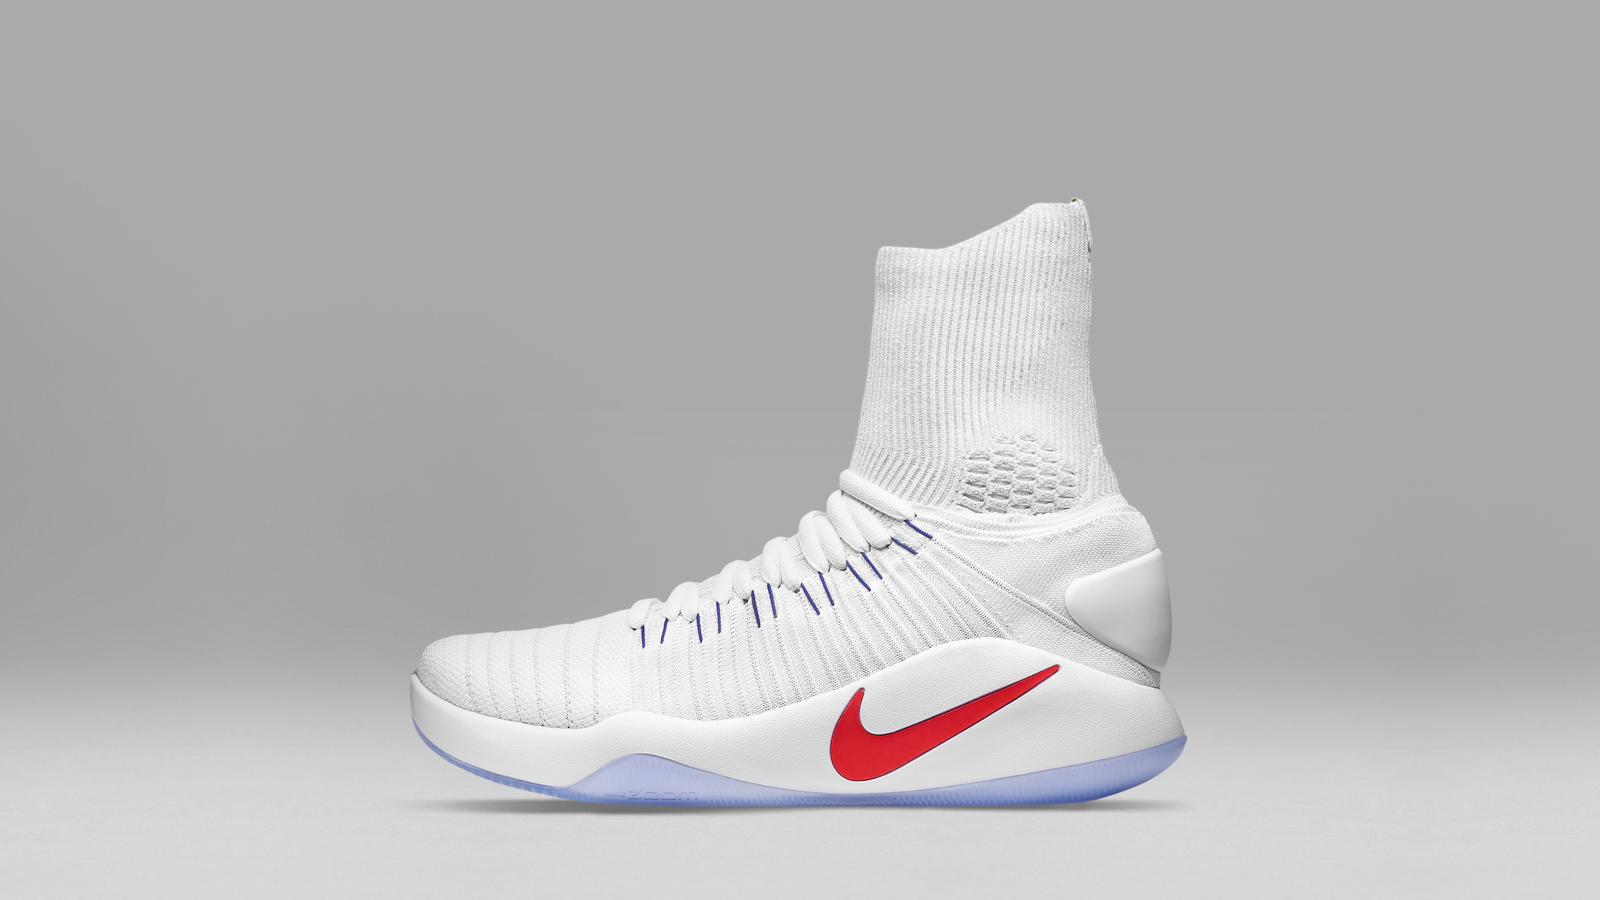 Nike Hyperdunk 2016 Exemplifies Performance Innovation. Share Image